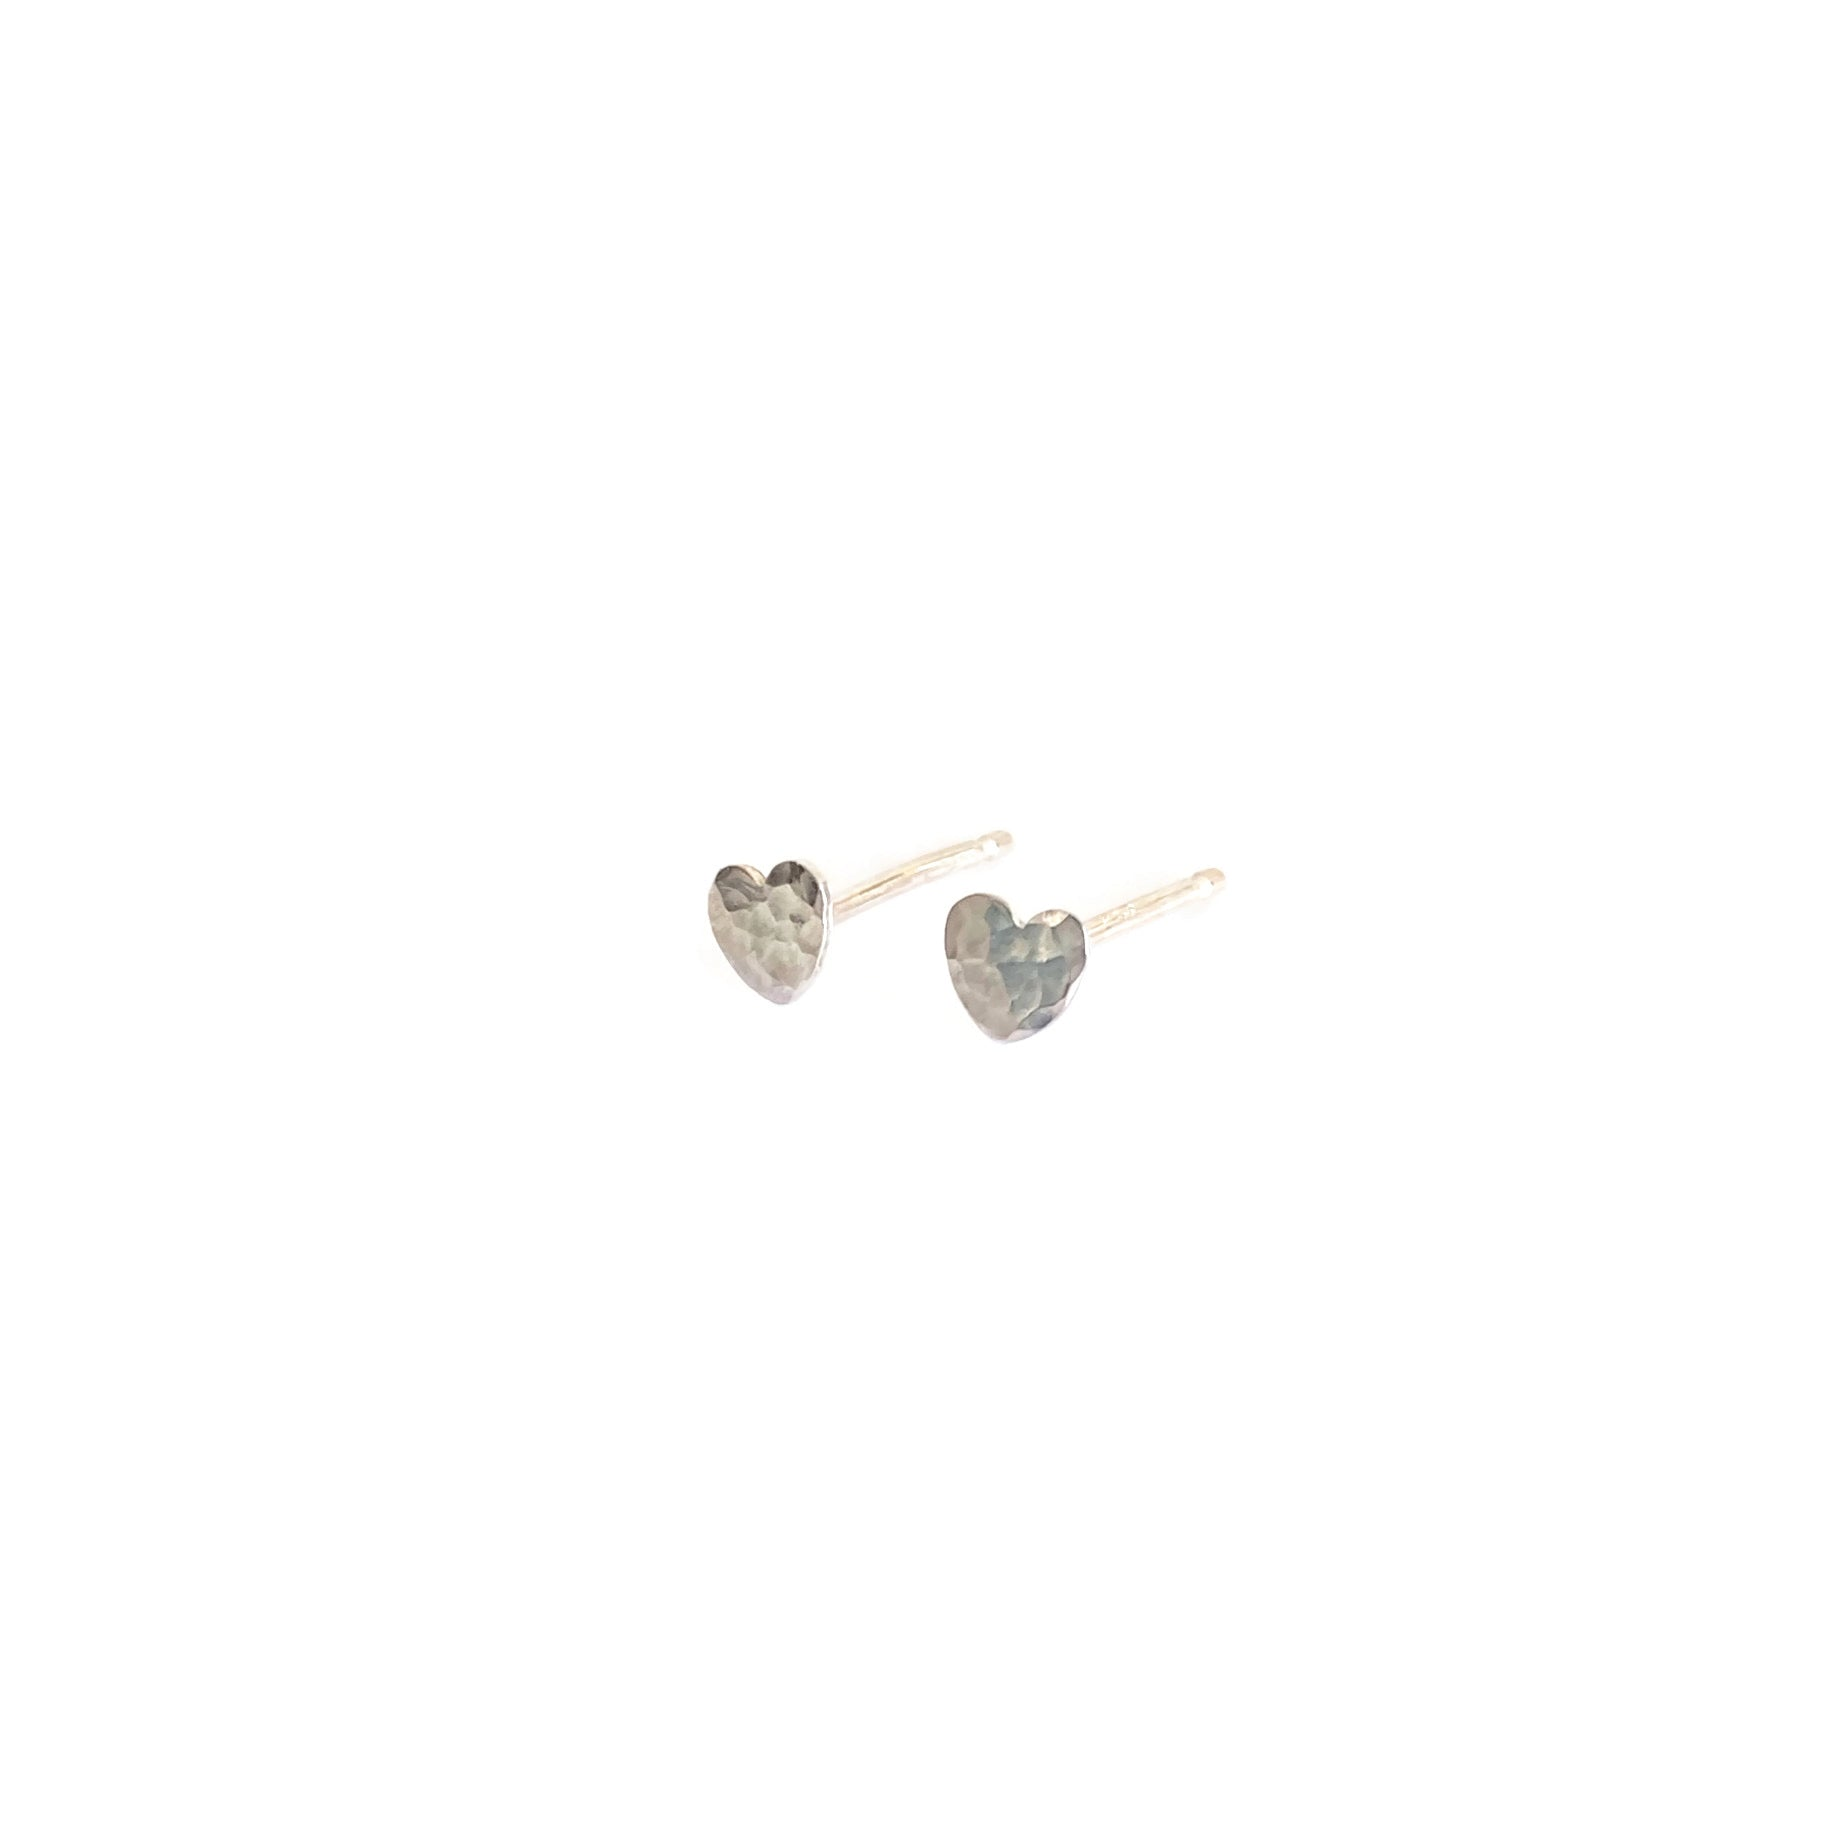 hammer texture heart earrings are made of sterling silver in San Francisco